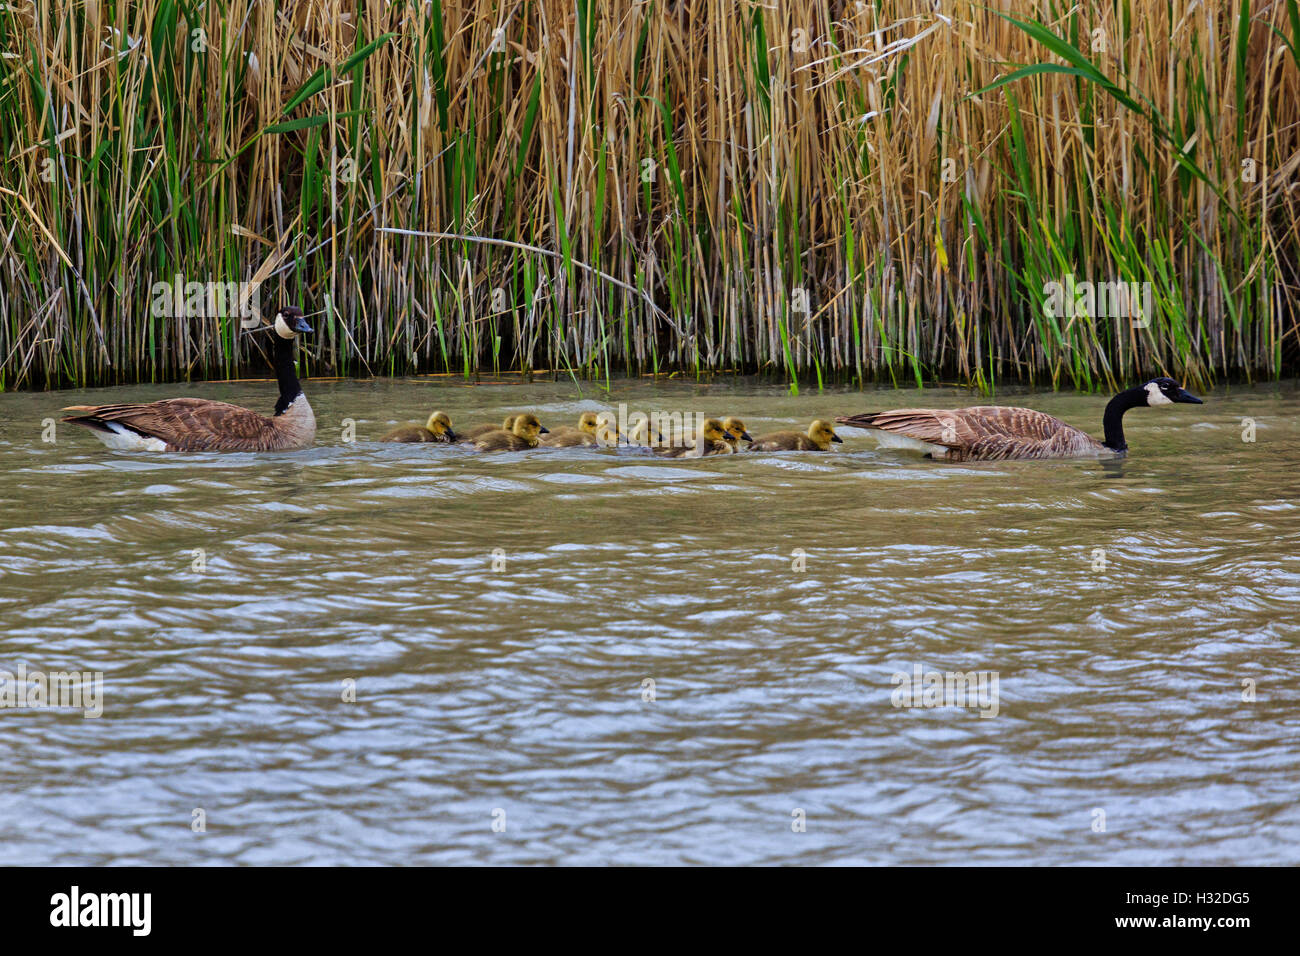 A family of Canada Geese (Branta canadensis) swims up the main channel of the Bear River Migratory Bird Refuge near Stock Photo